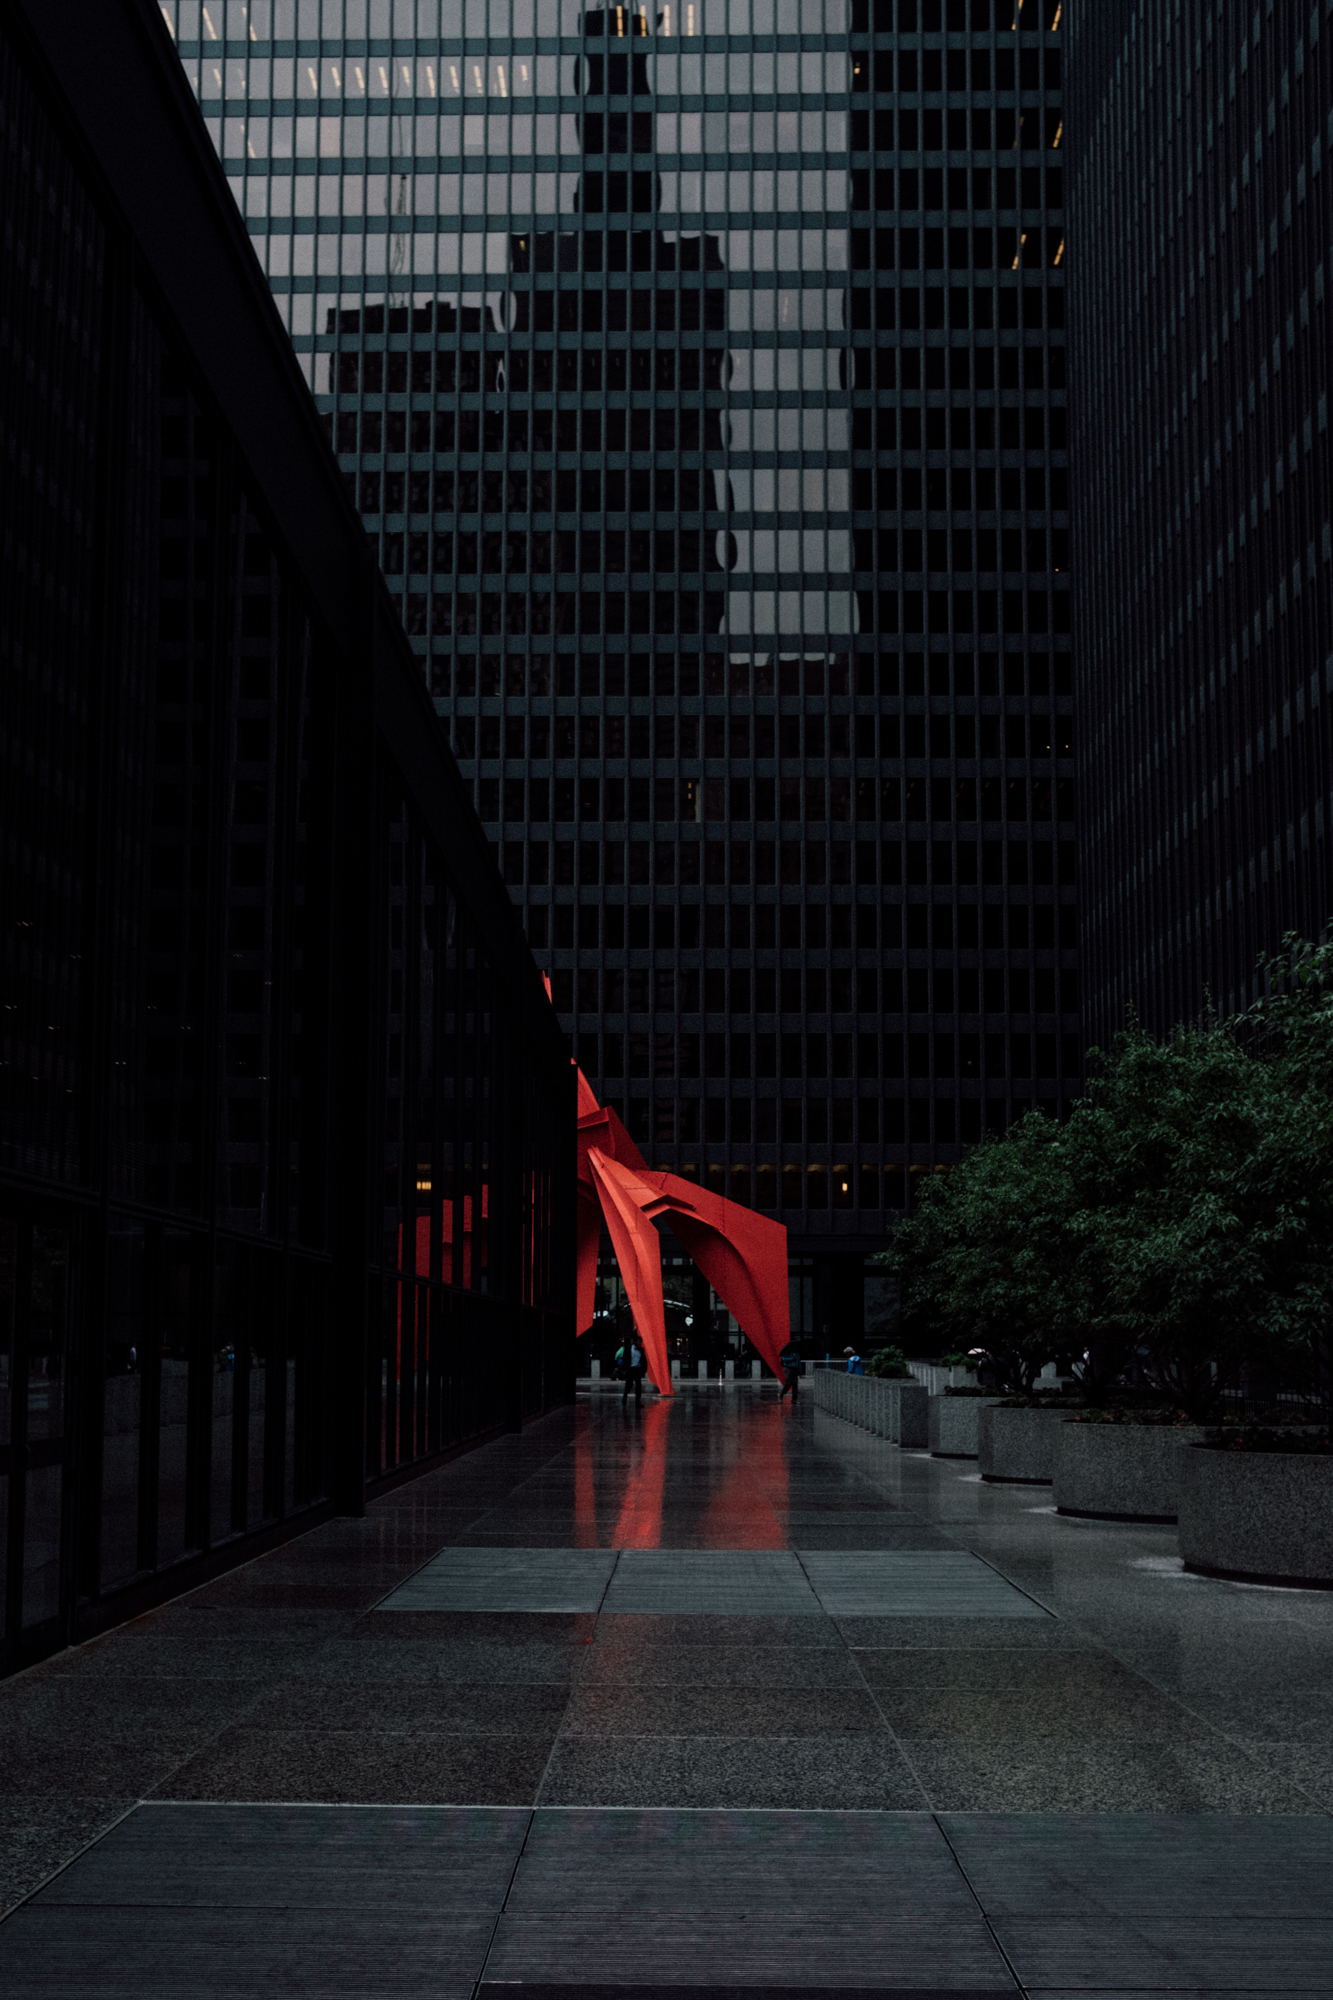 streeterville and chicago (11 of 46).jpg